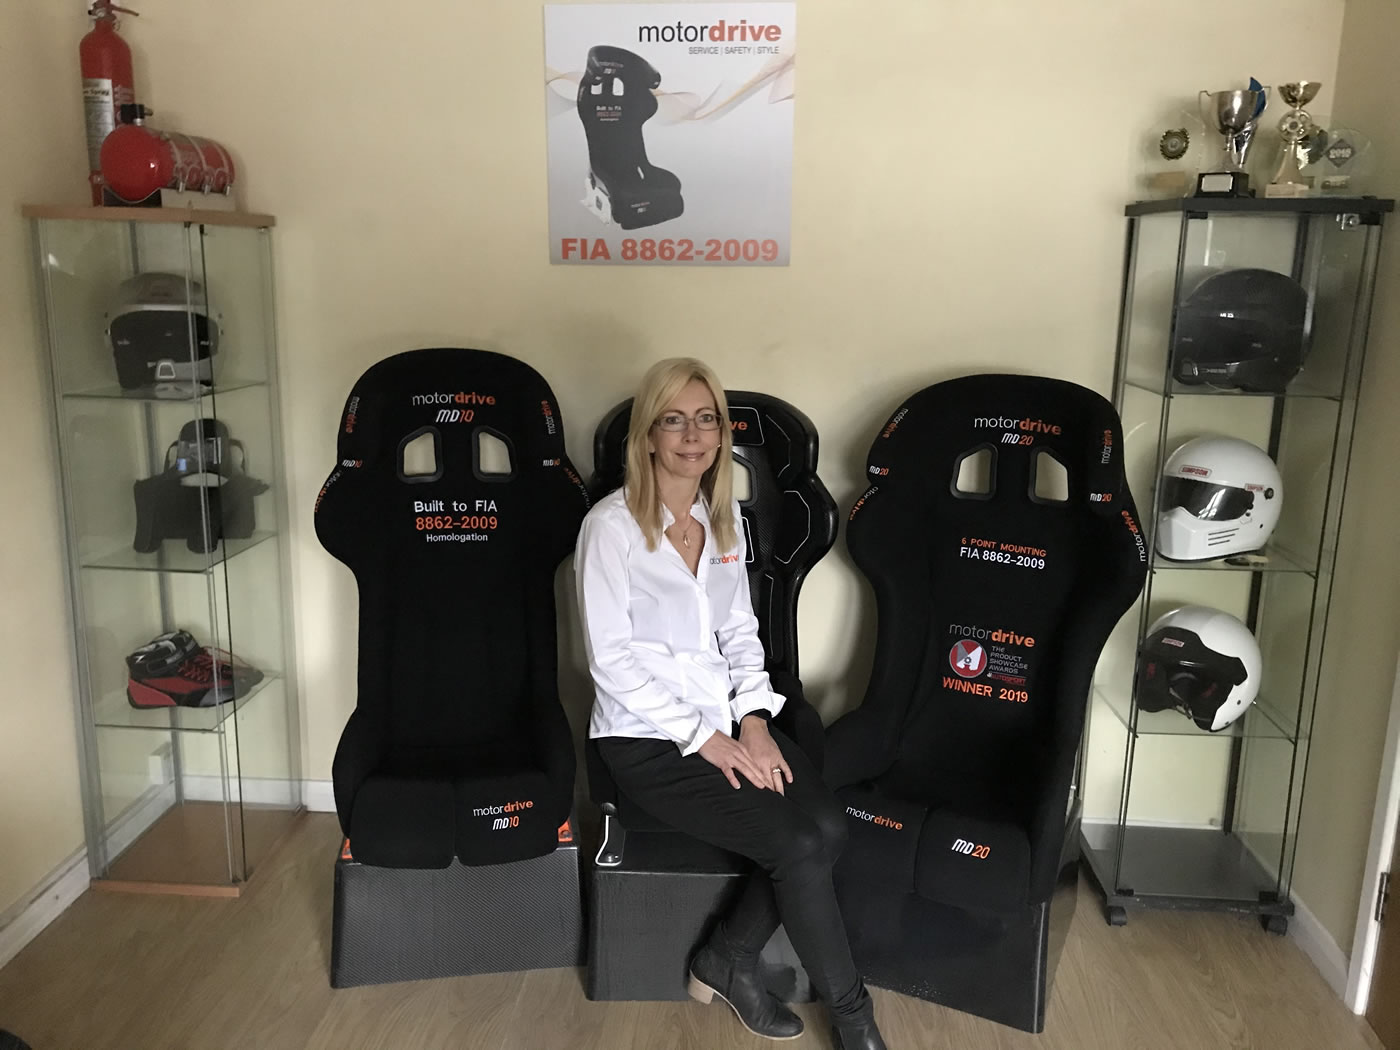 The Motordrive Seats showroom